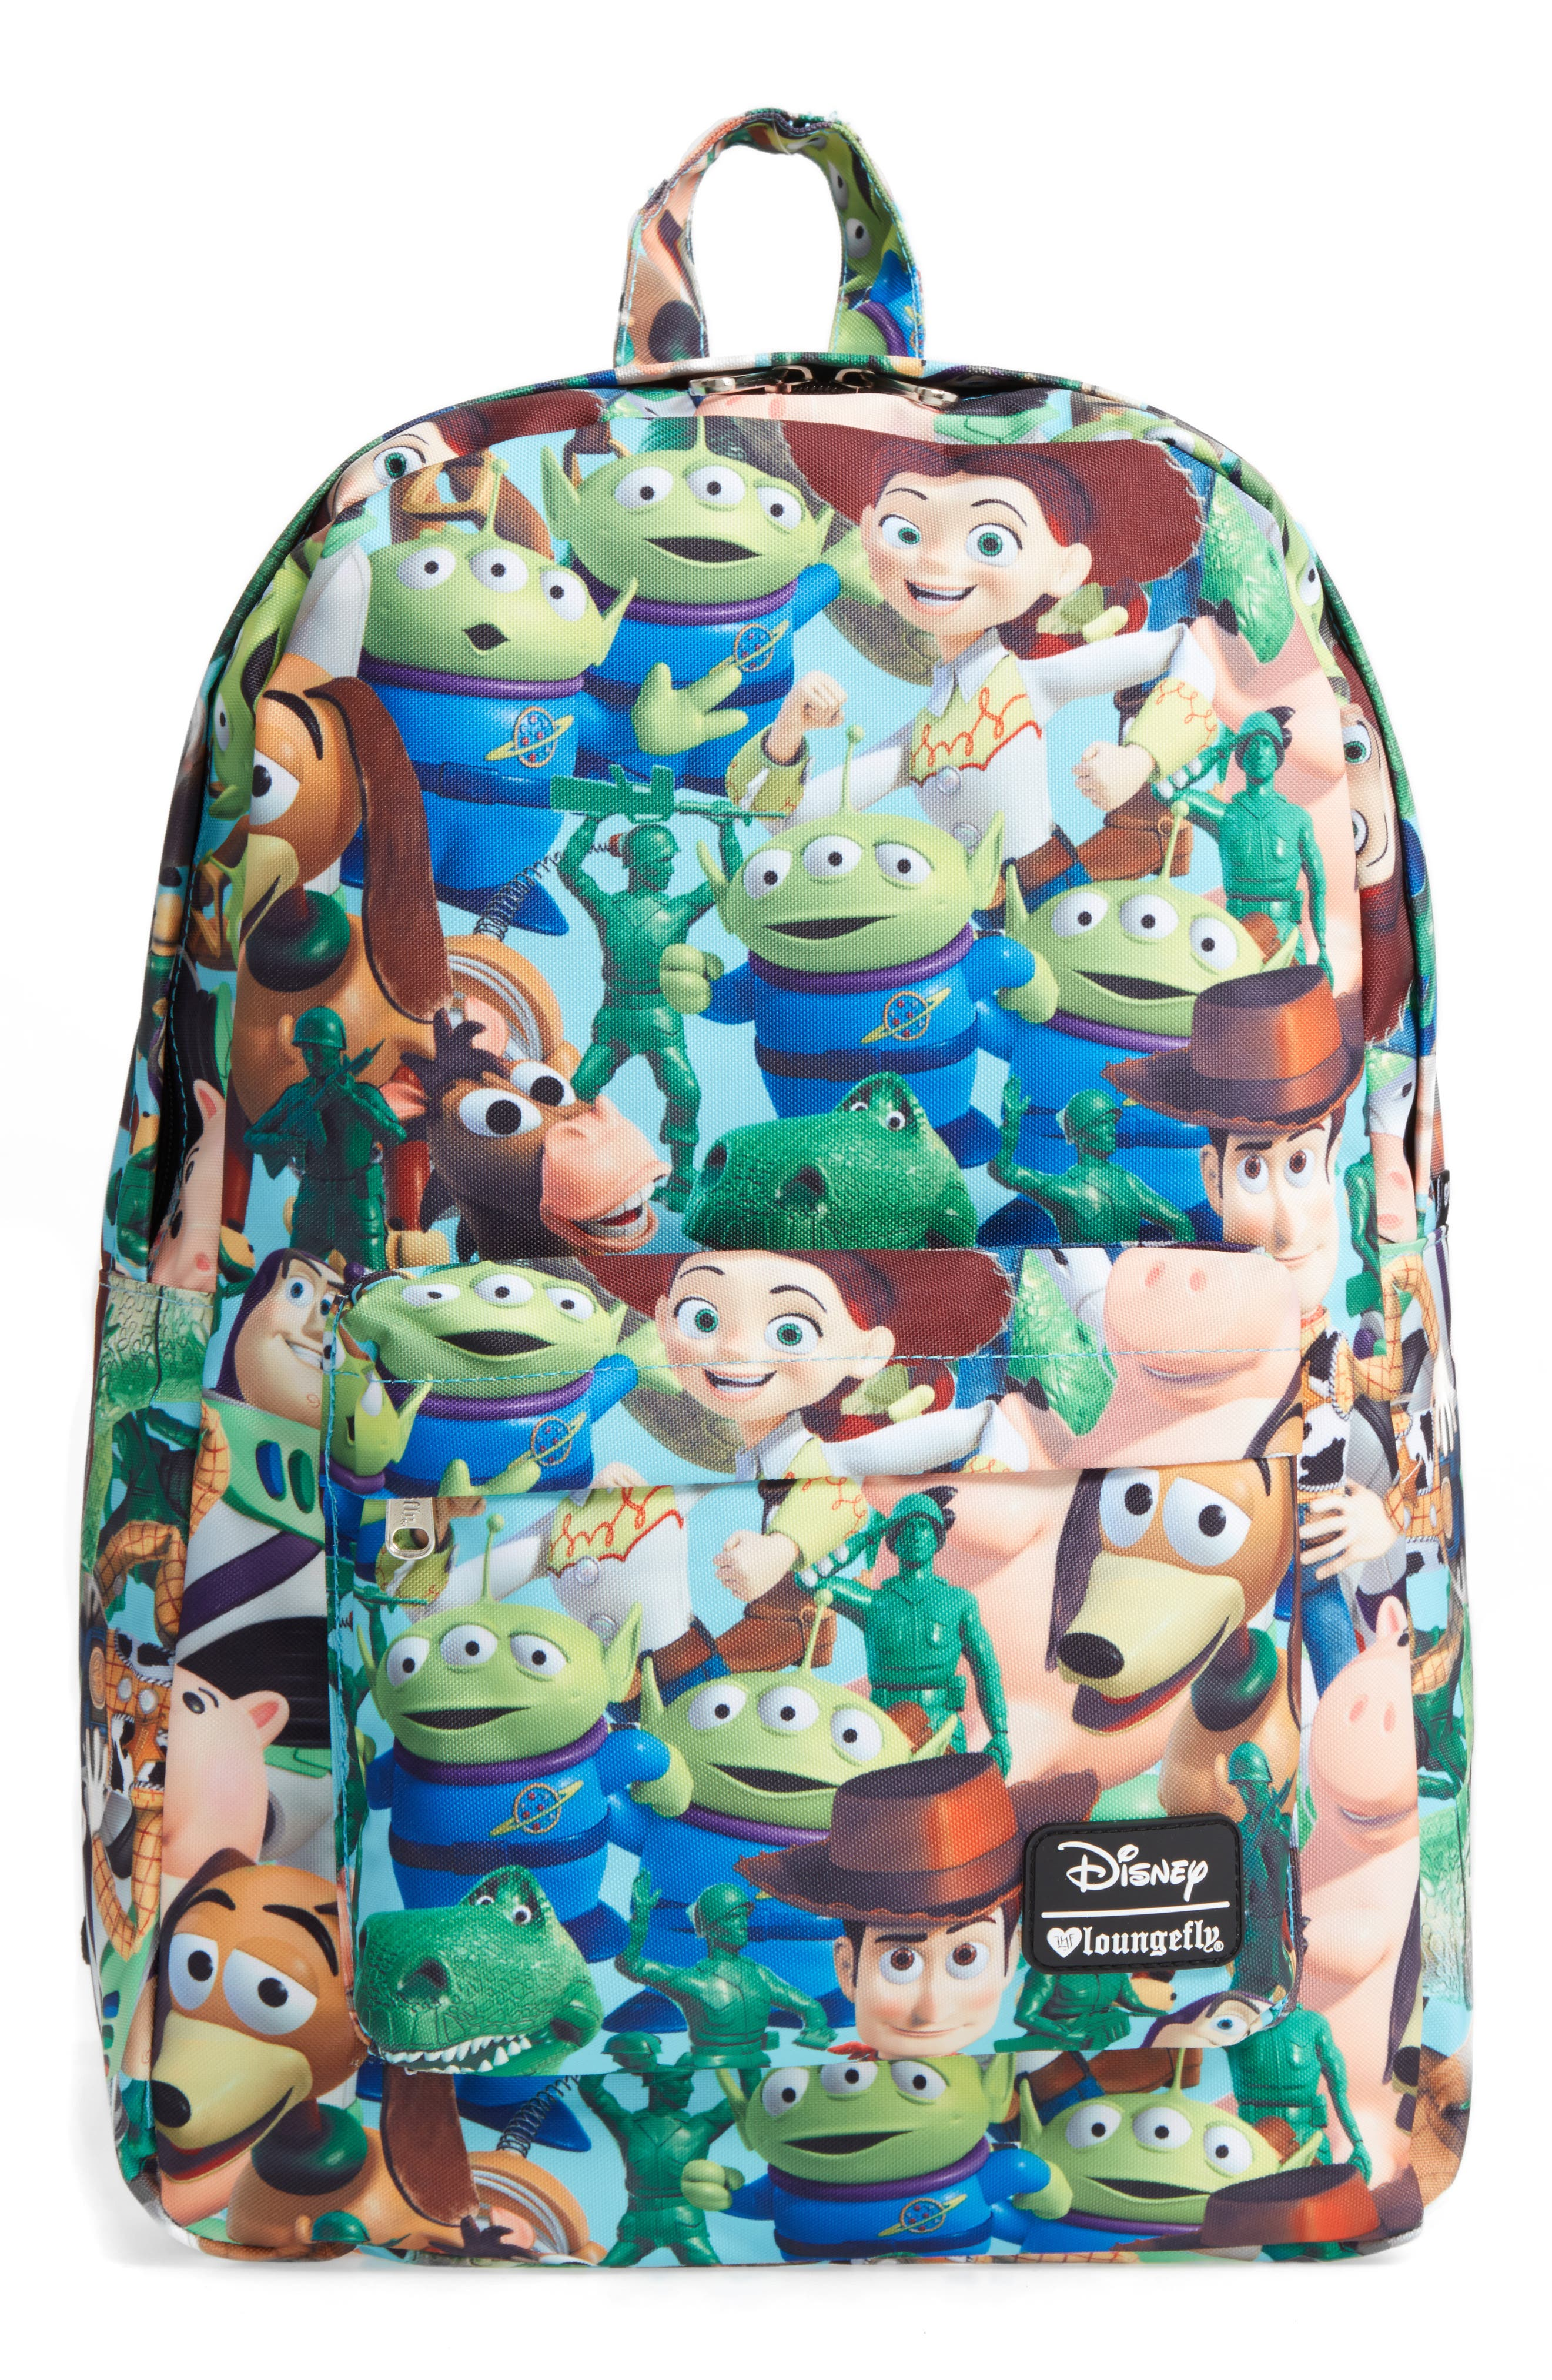 Main Image - Loungefly Disney® Toy Story Backpack (Kids)